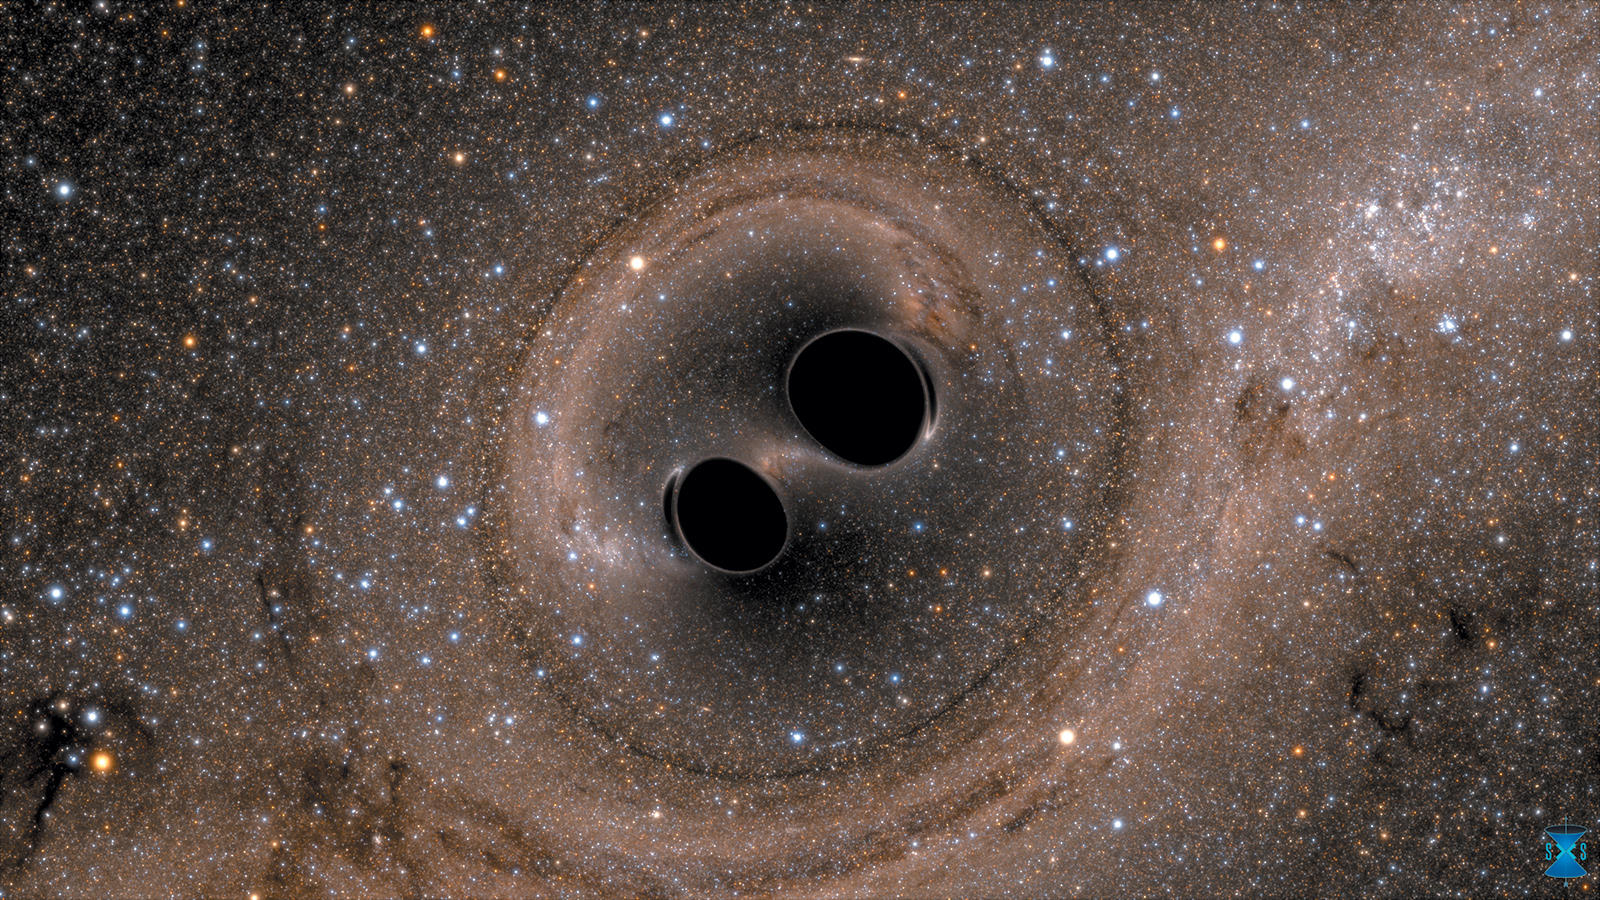 A computer simulation of the collision of two black holes, which merged about 1.3 billion years ago to form a single black hole sixty-two times the mass of the sun. The gravitational waves were detected last September by the Laser Interferometer Gravitational-Wave Observatory (LIGO), which announced the discovery in February 2016.